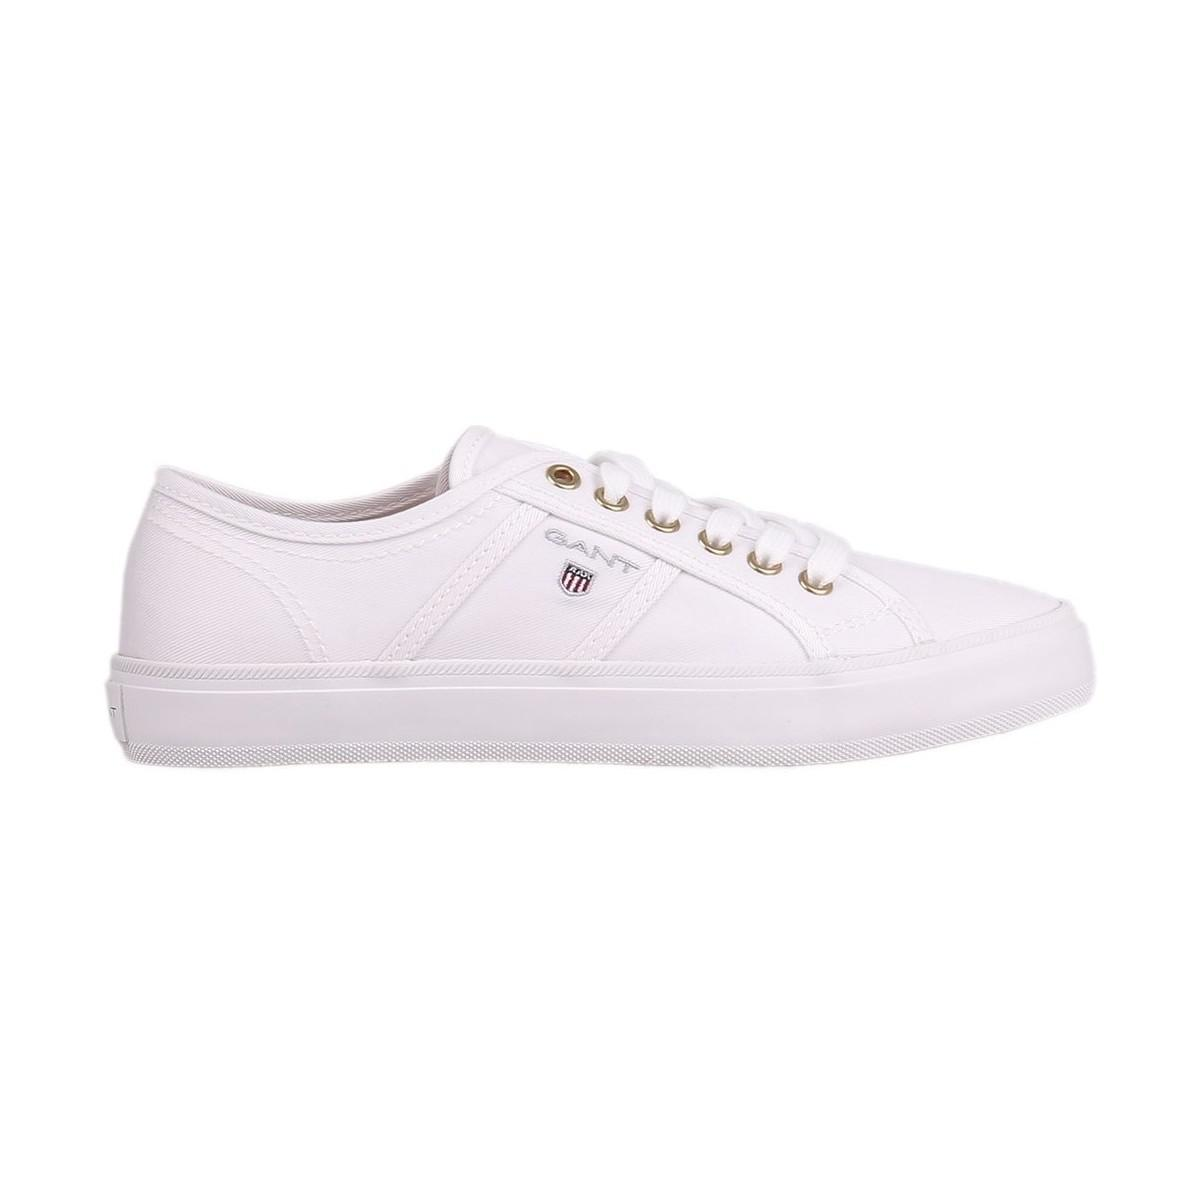 c5644b5b52 GANT Zoe Shoes Woman Women's Shoes (trainers) In White in White - Lyst